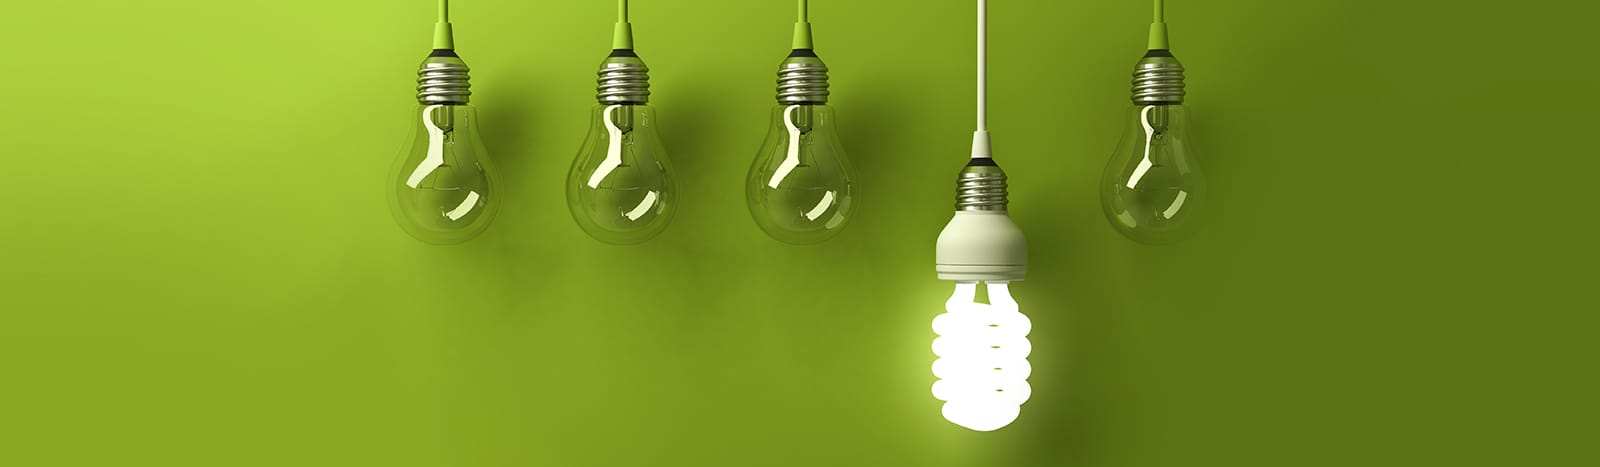 Lightbulbs in a row on a  green background